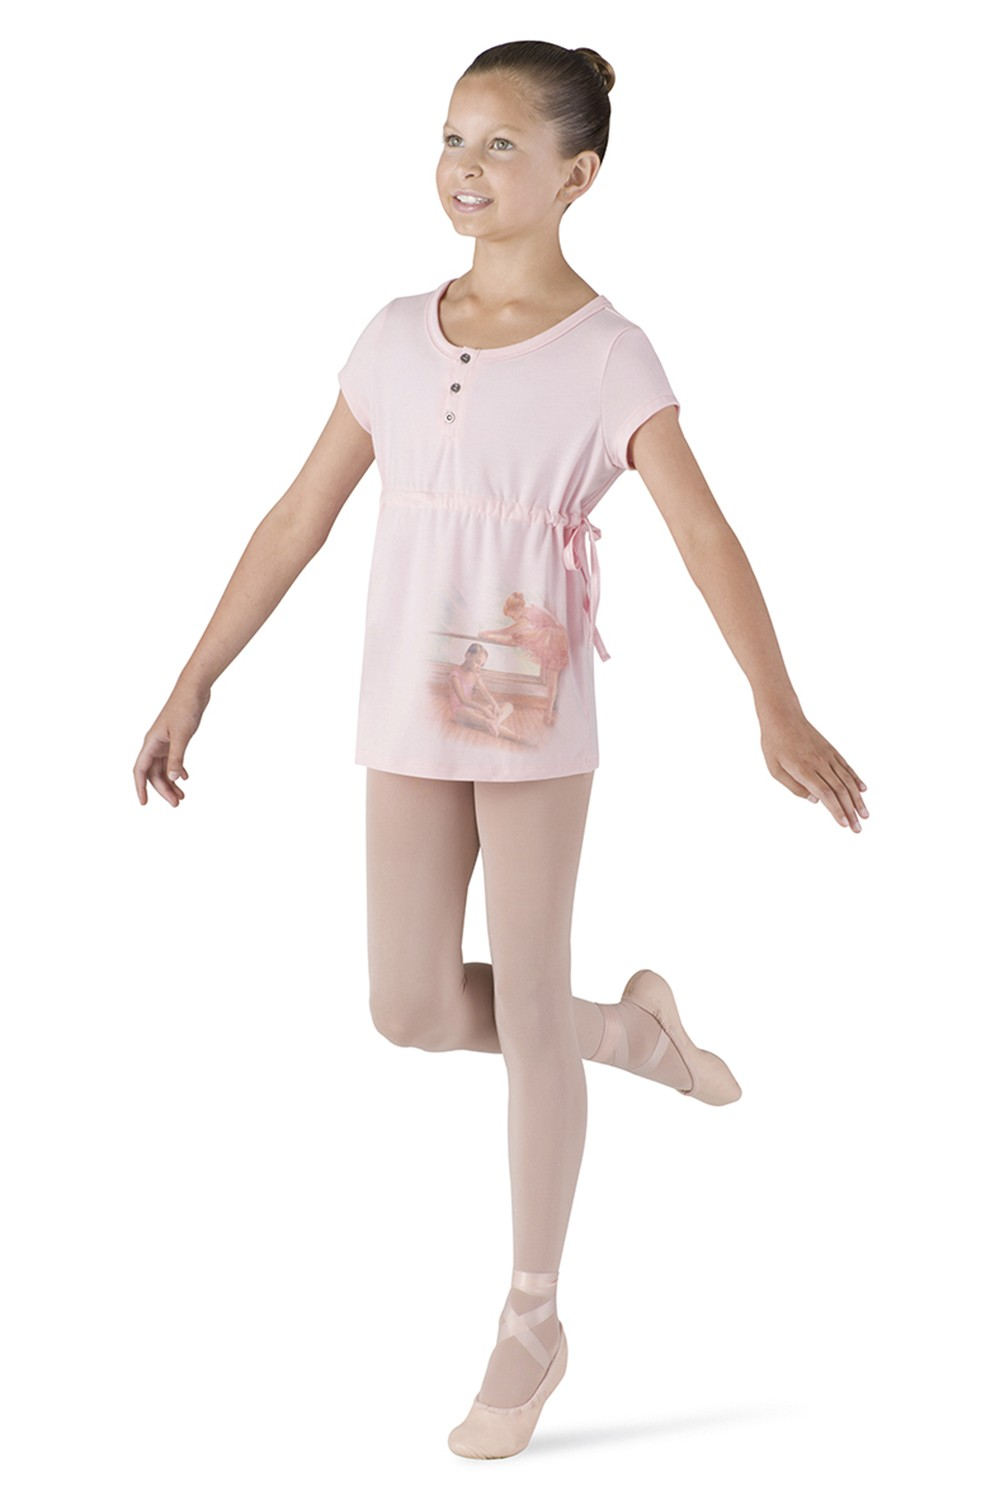 Children's Dance Tops